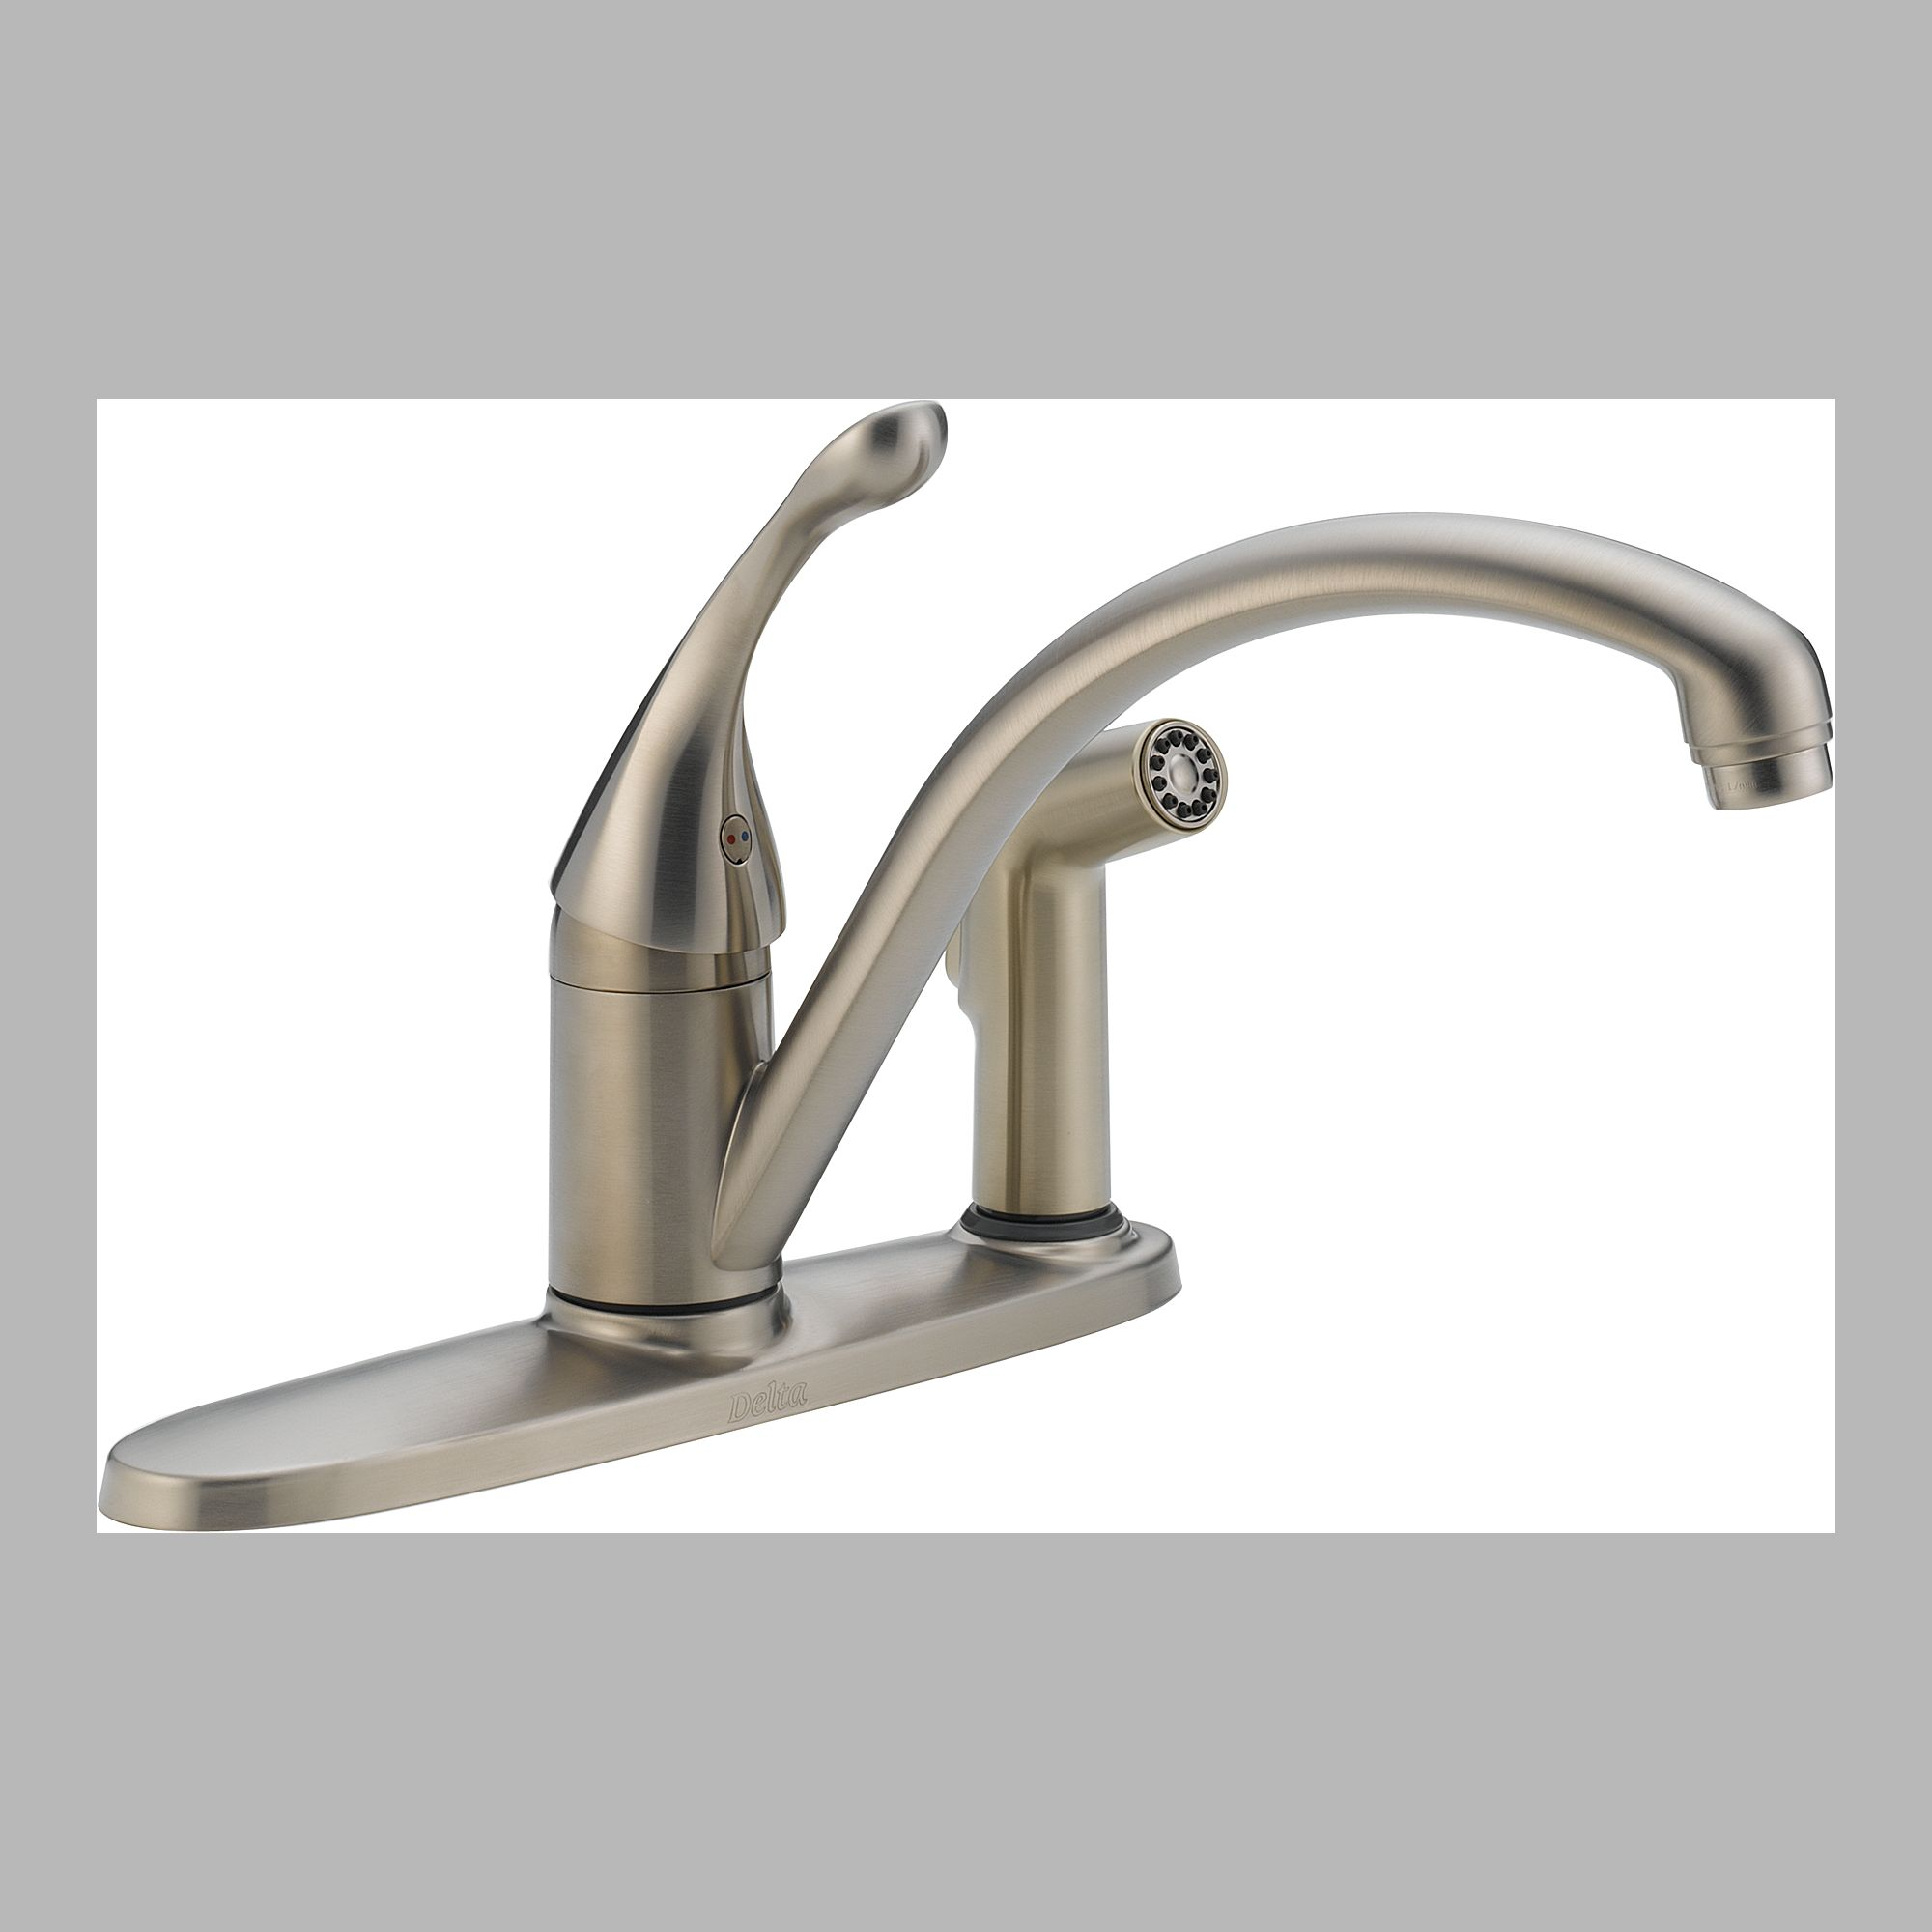 Attractive Kitchen Faucets Discount Mold - Faucet Products ...